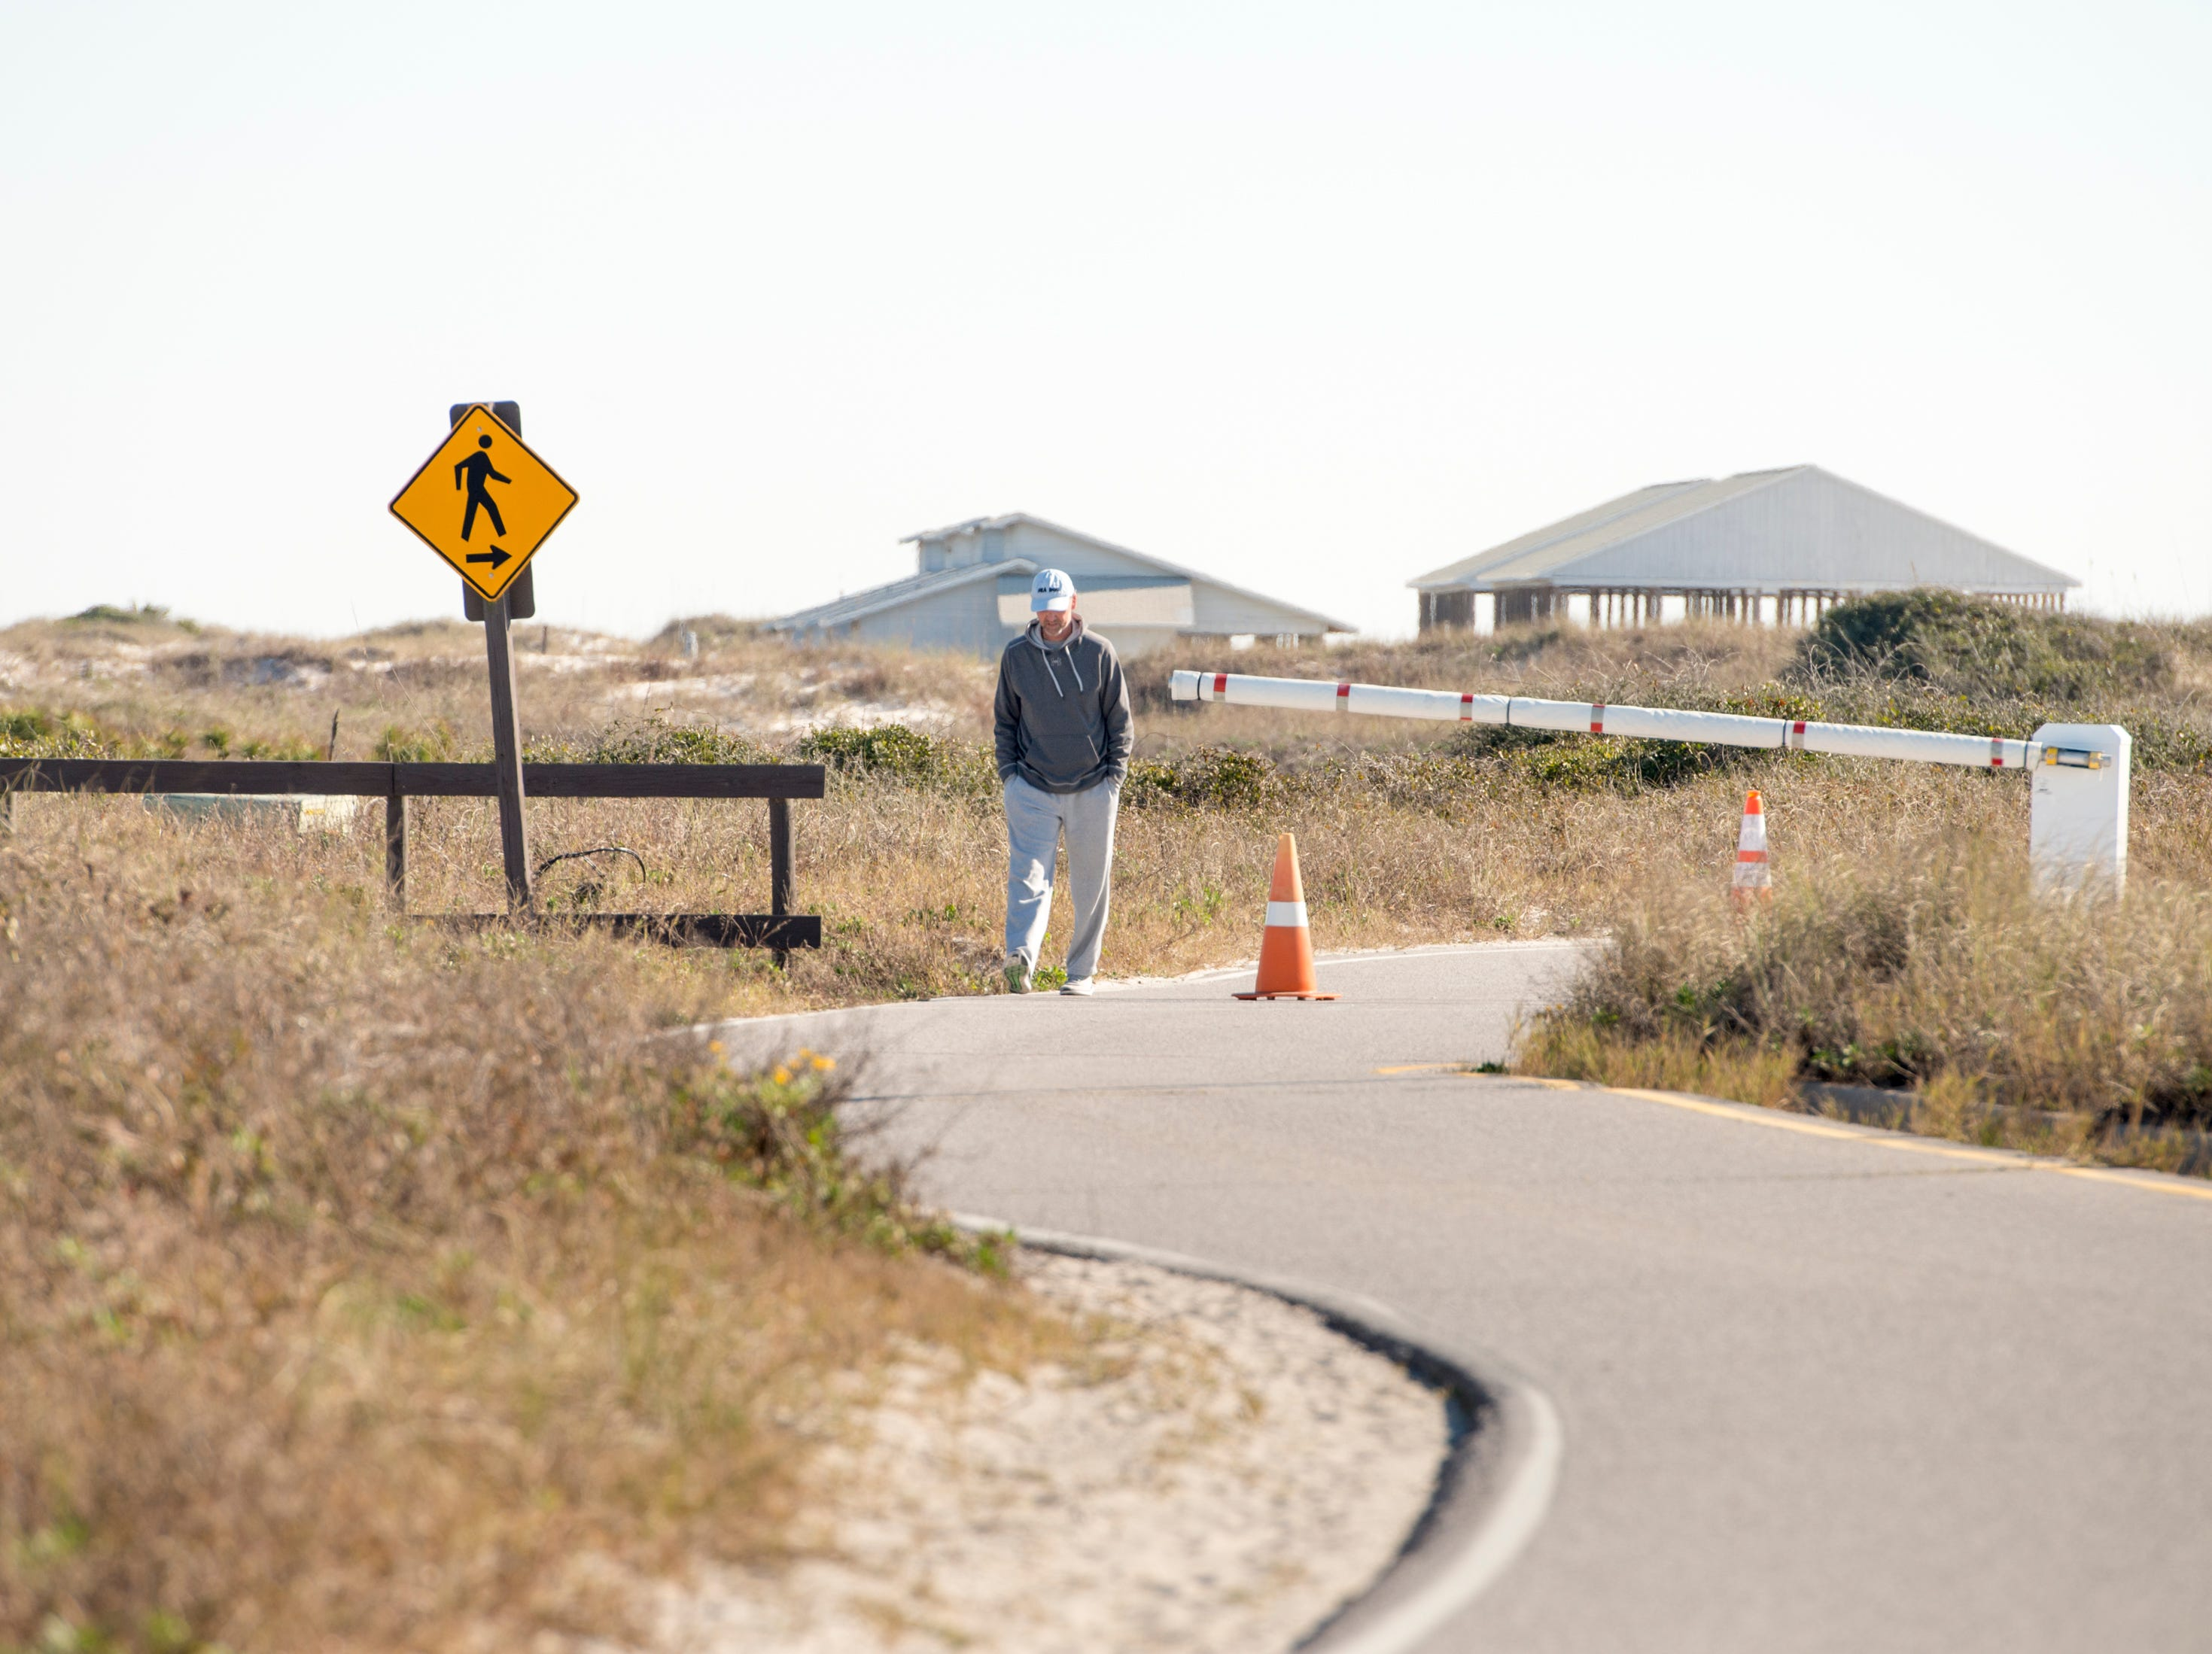 Richard Morrison, of Michigan, walks along the road at Gulf Islands National Seashore's Rosamond Johnson Beach in Perdido Key on Friday, January 11, 2019.  The National Park is closed due to the federal government shutdown.